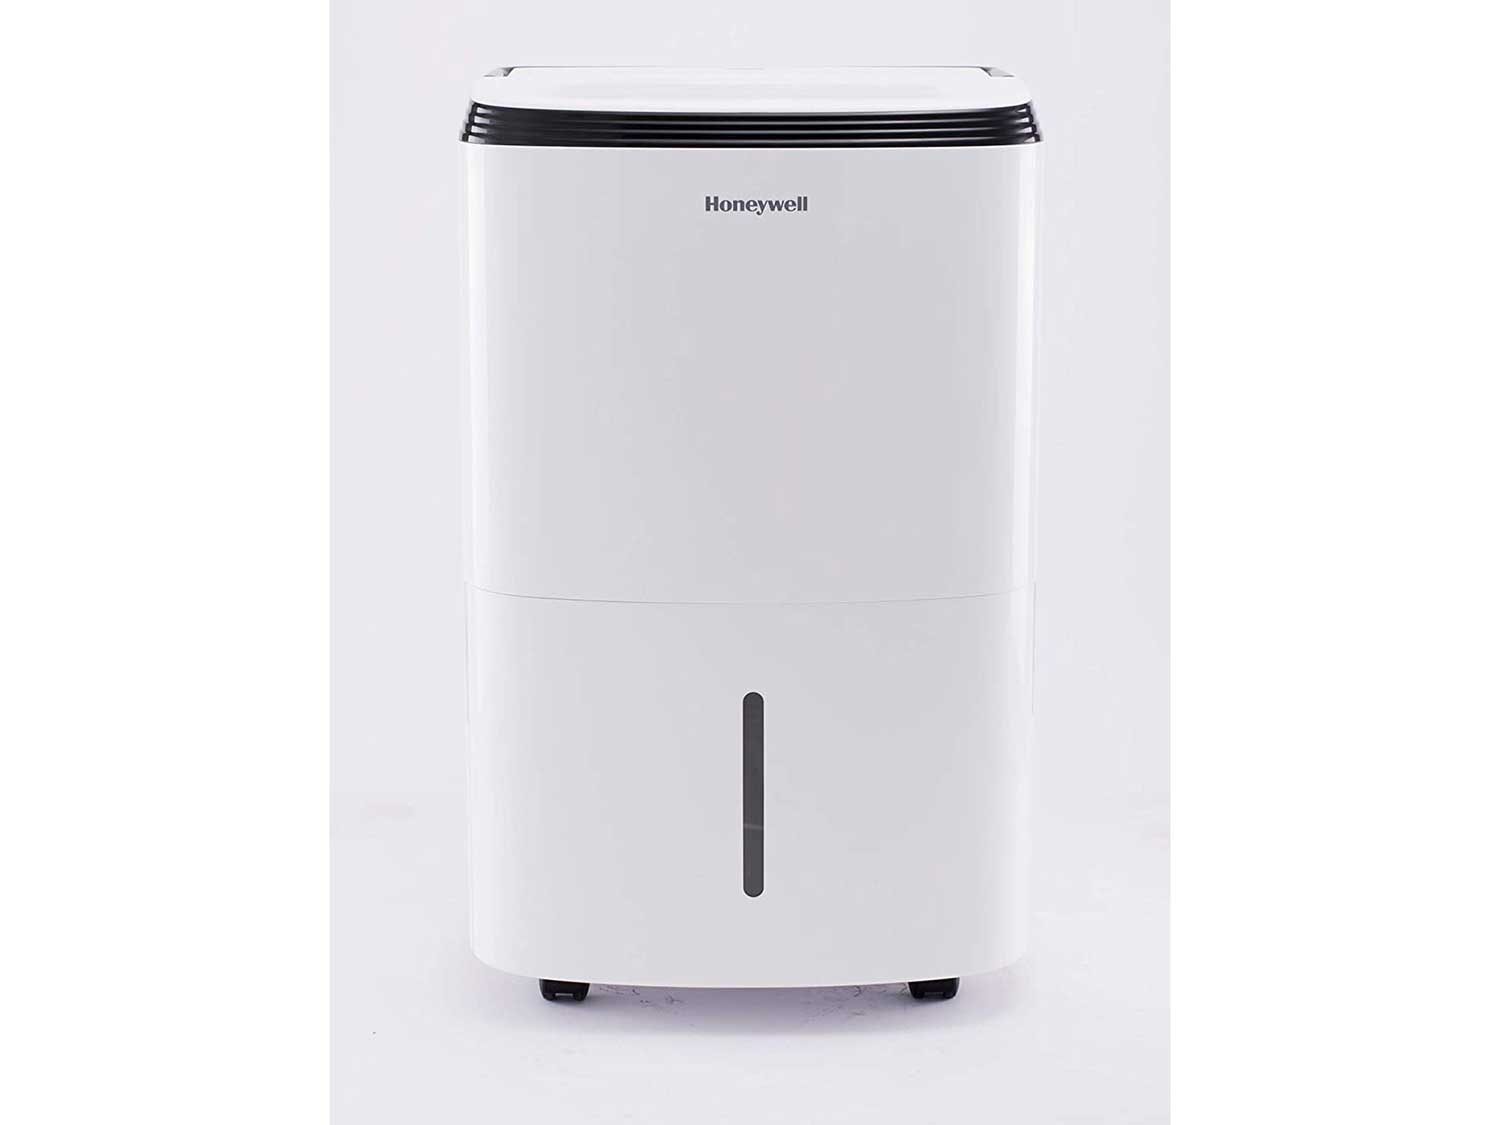 Honeywell Large SqFt Design & Filter Change Alert, TP70WKN, White TP70WK 70 Pint Energy Star Dehumidifier for Basement & Large Room Up to 4000 Sq Ft. with Anti-Spill Design